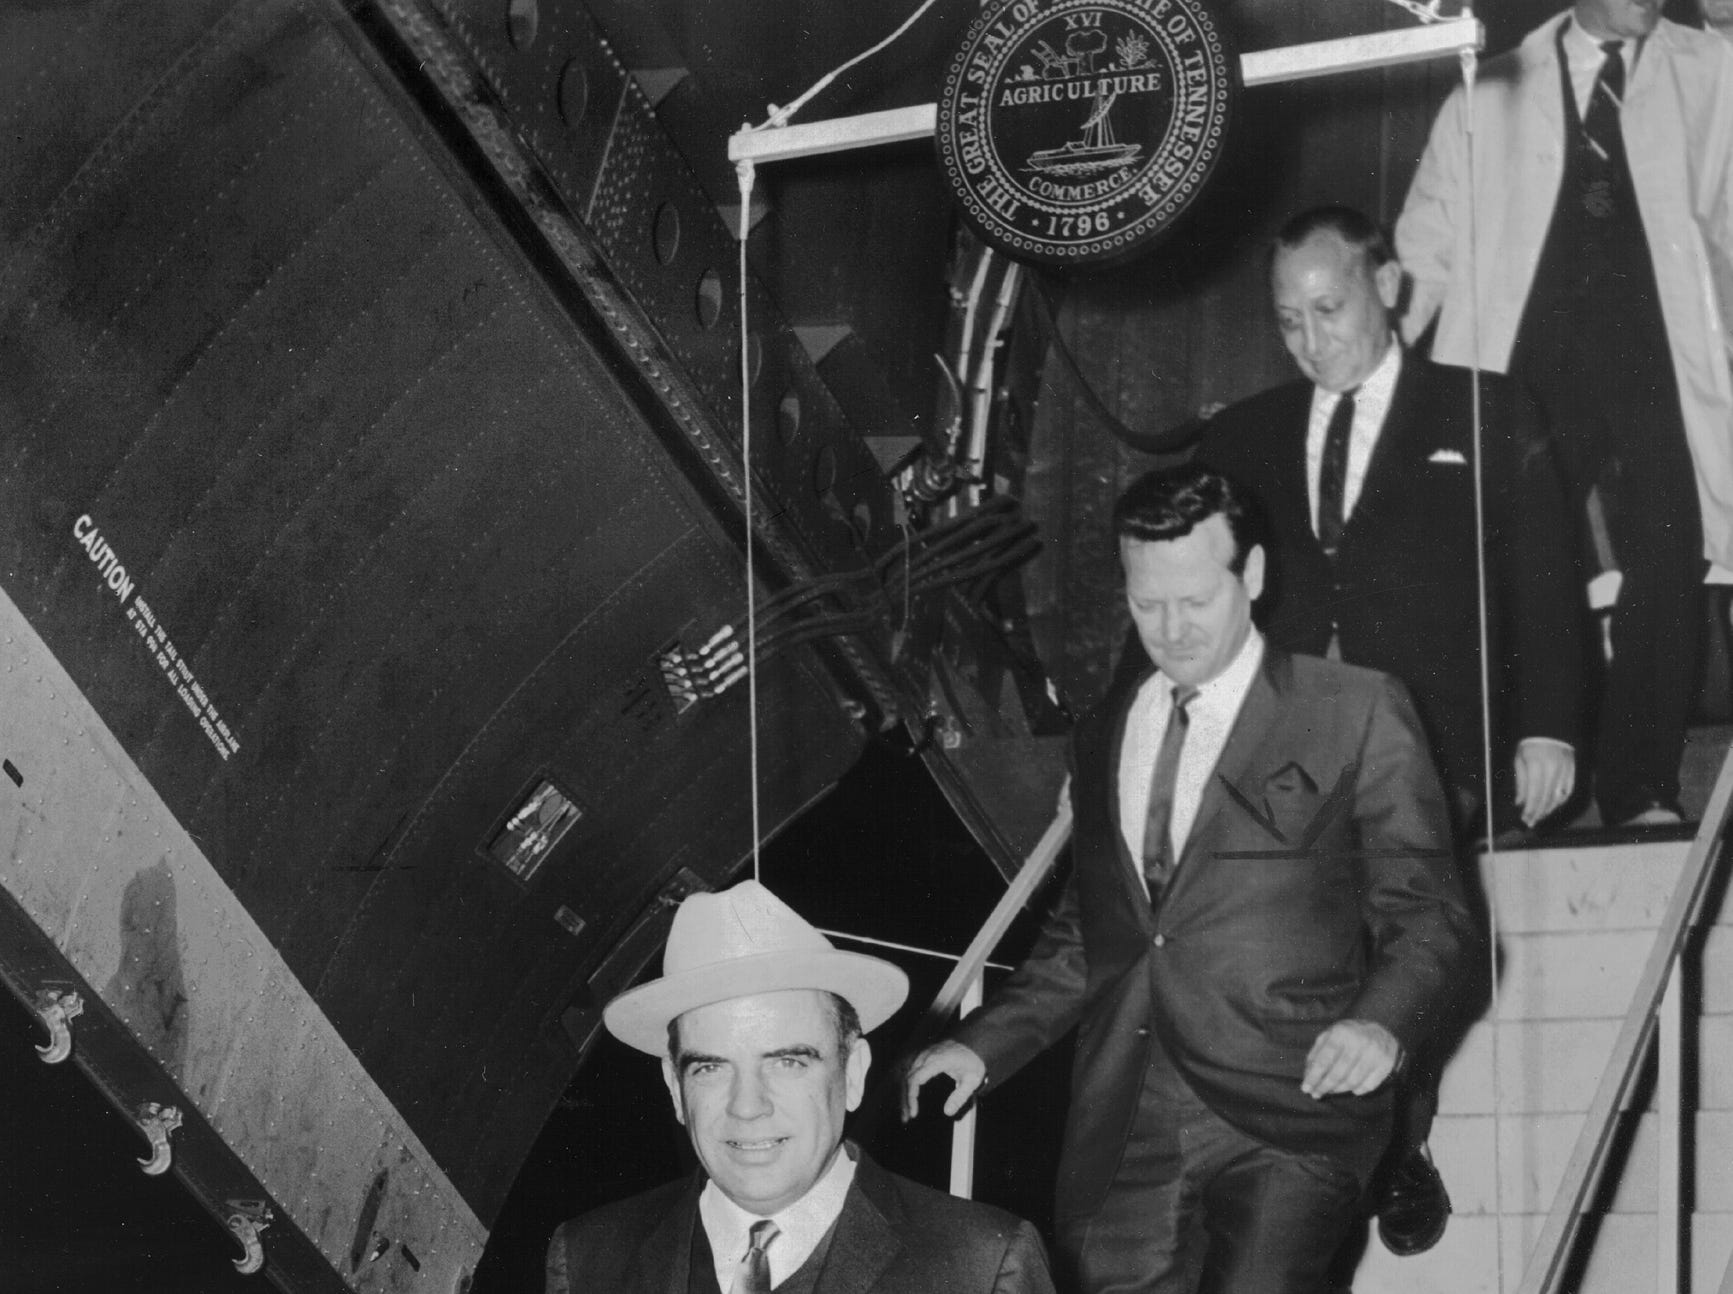 Tennessee Gov. Frank Clement leaves the National Guard transport plane that brought him to Memphis Metropolitan Airport on Dec. 21, 1965, to announce that Memphis has been awarded a giant new Radio Corporation of America television receiver manufacturing and distribution complex.